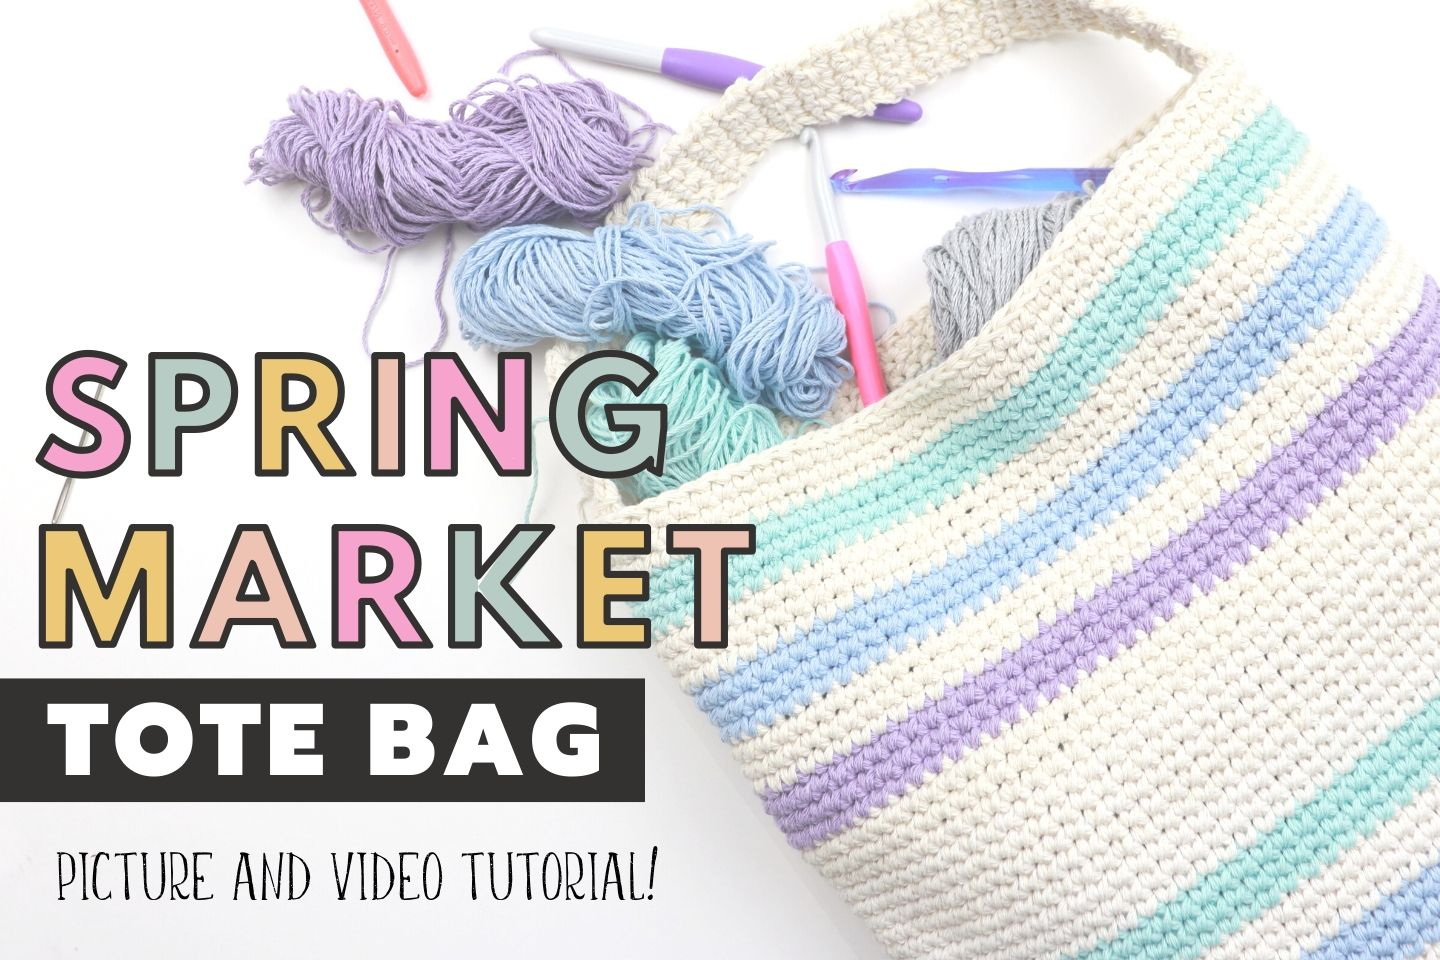 Spring Market Tote Bag | Free Crochet Pattern with Video Tutorial!